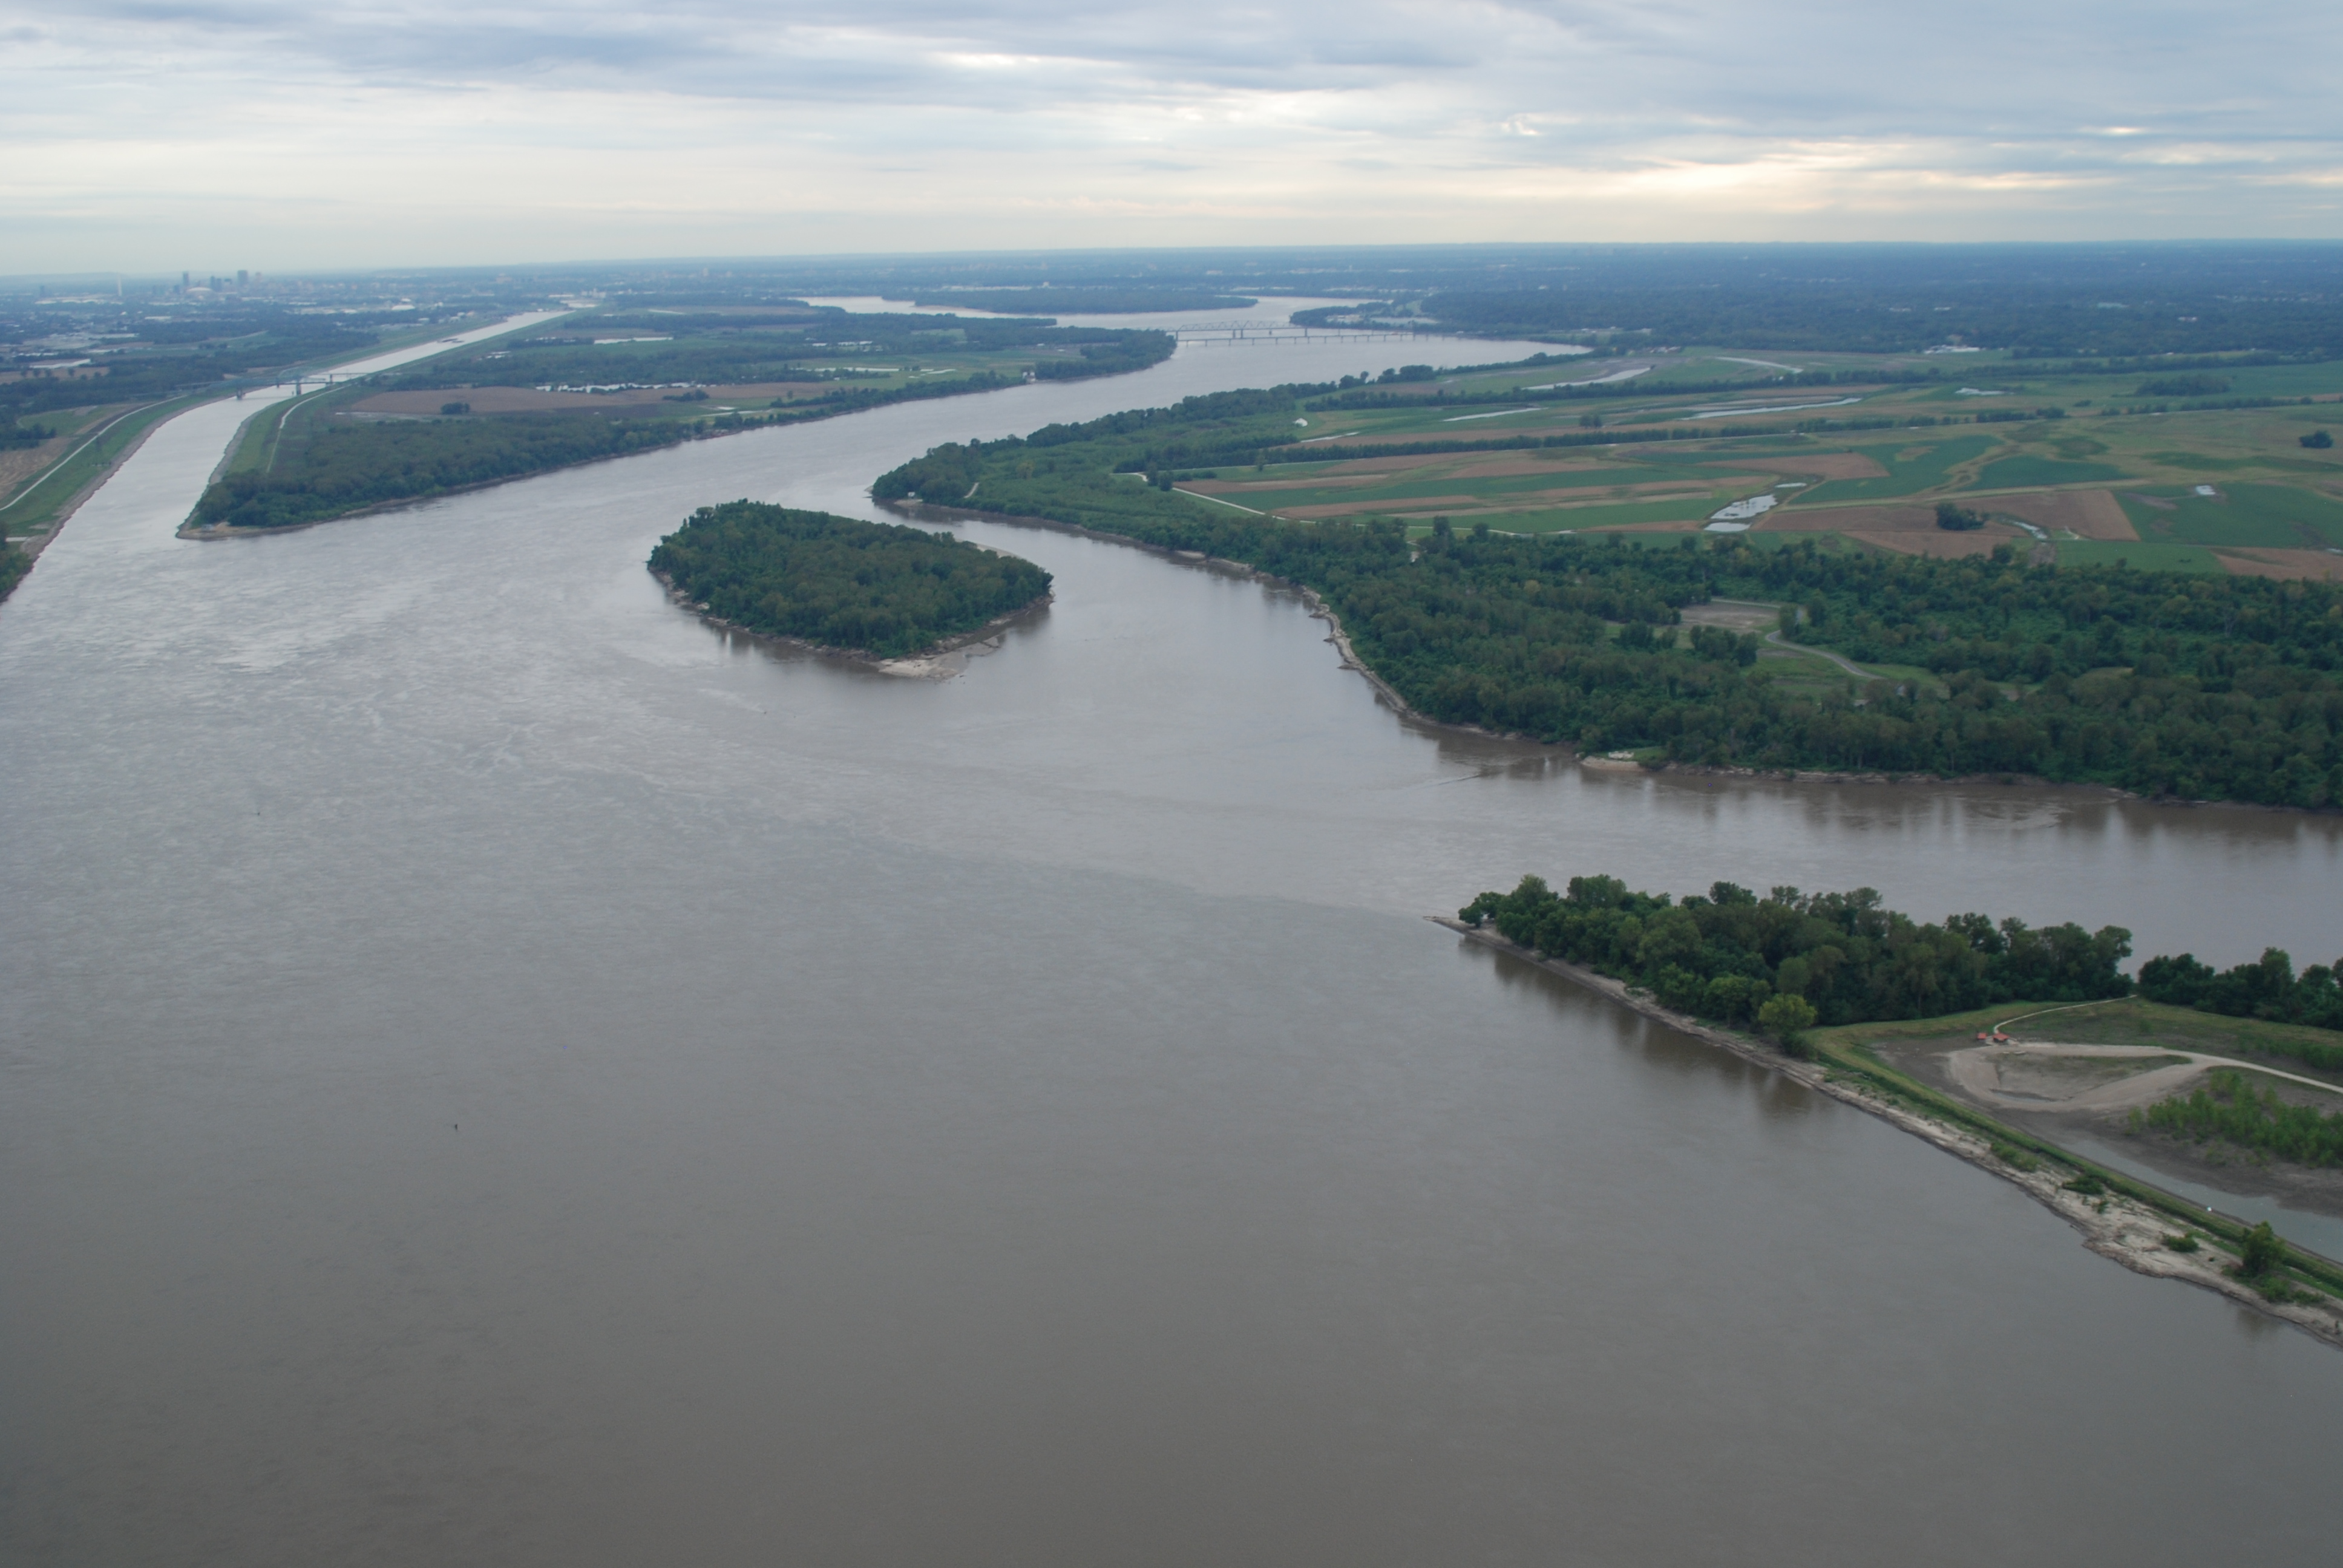 River Flood of 2011 Caused